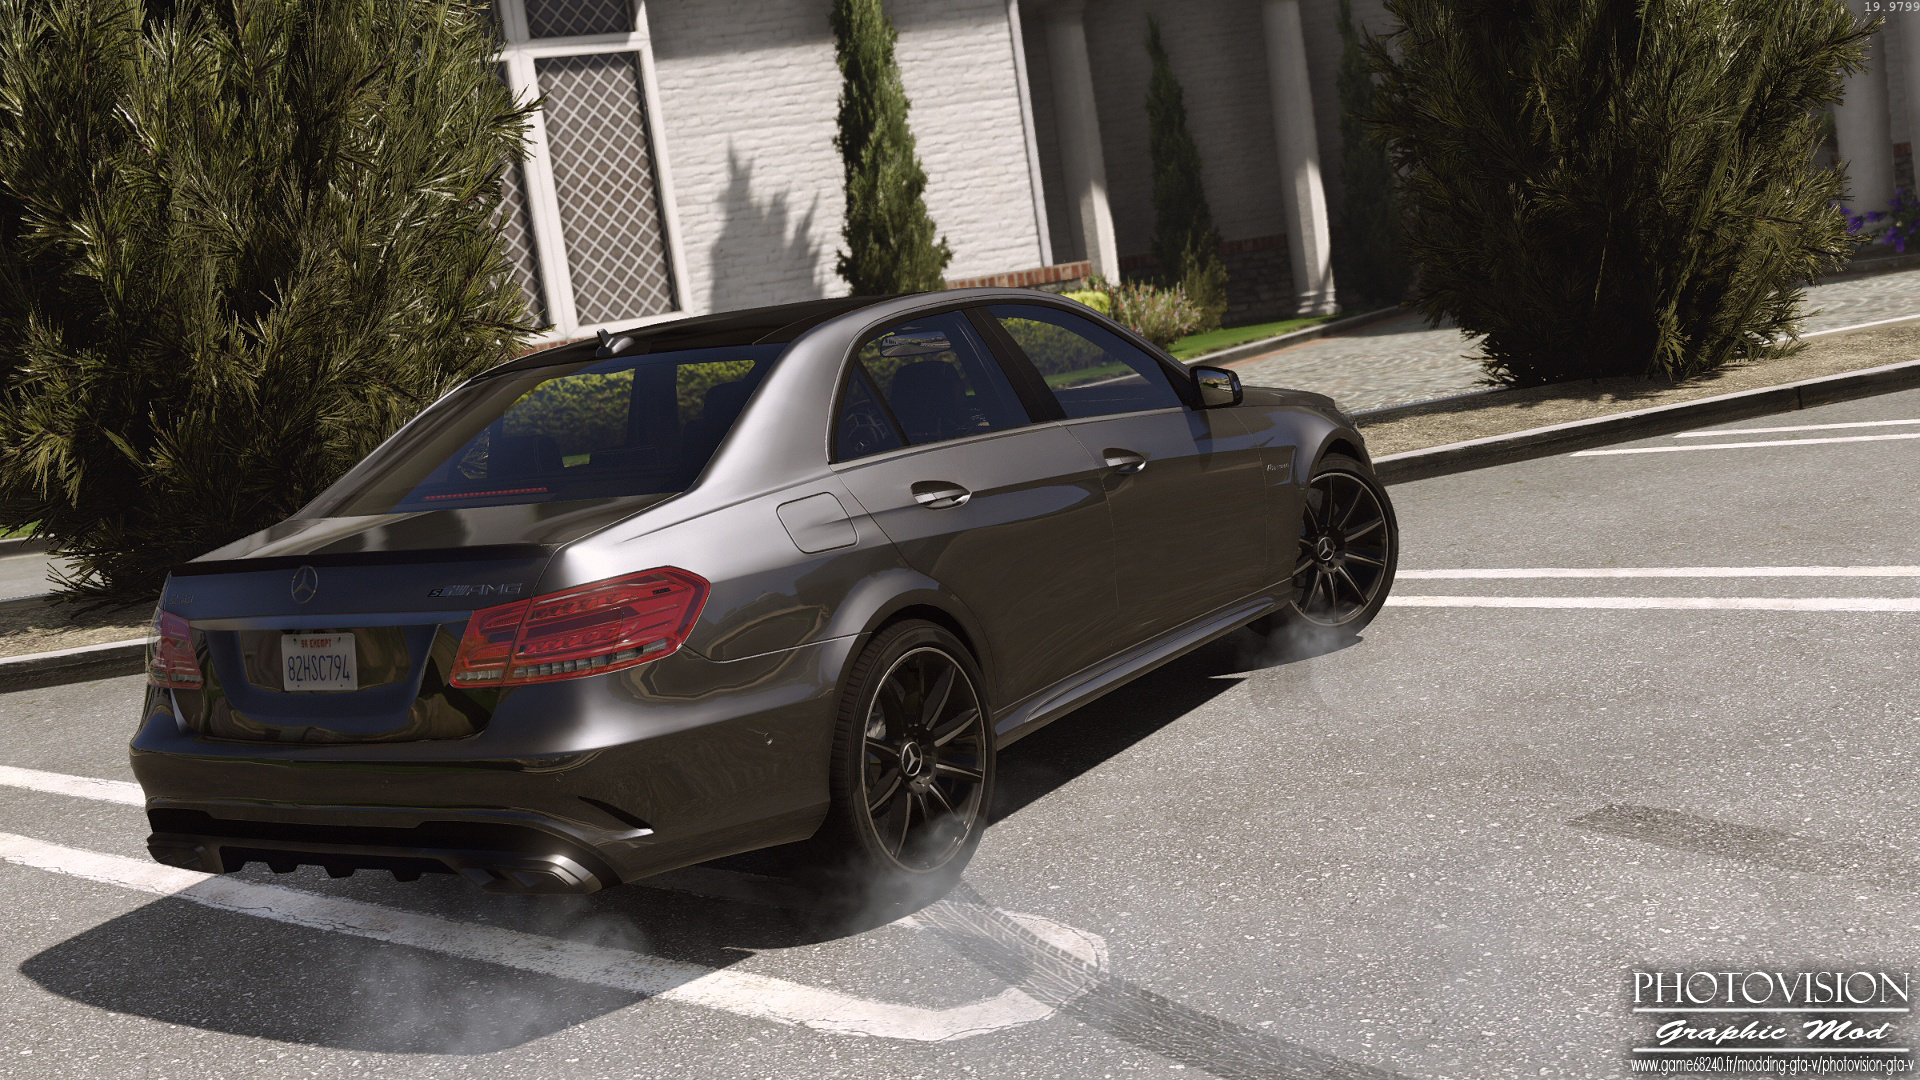 2013 mercedes benz e63 amg add on replace template for 2013 mercedes benz e63 amg